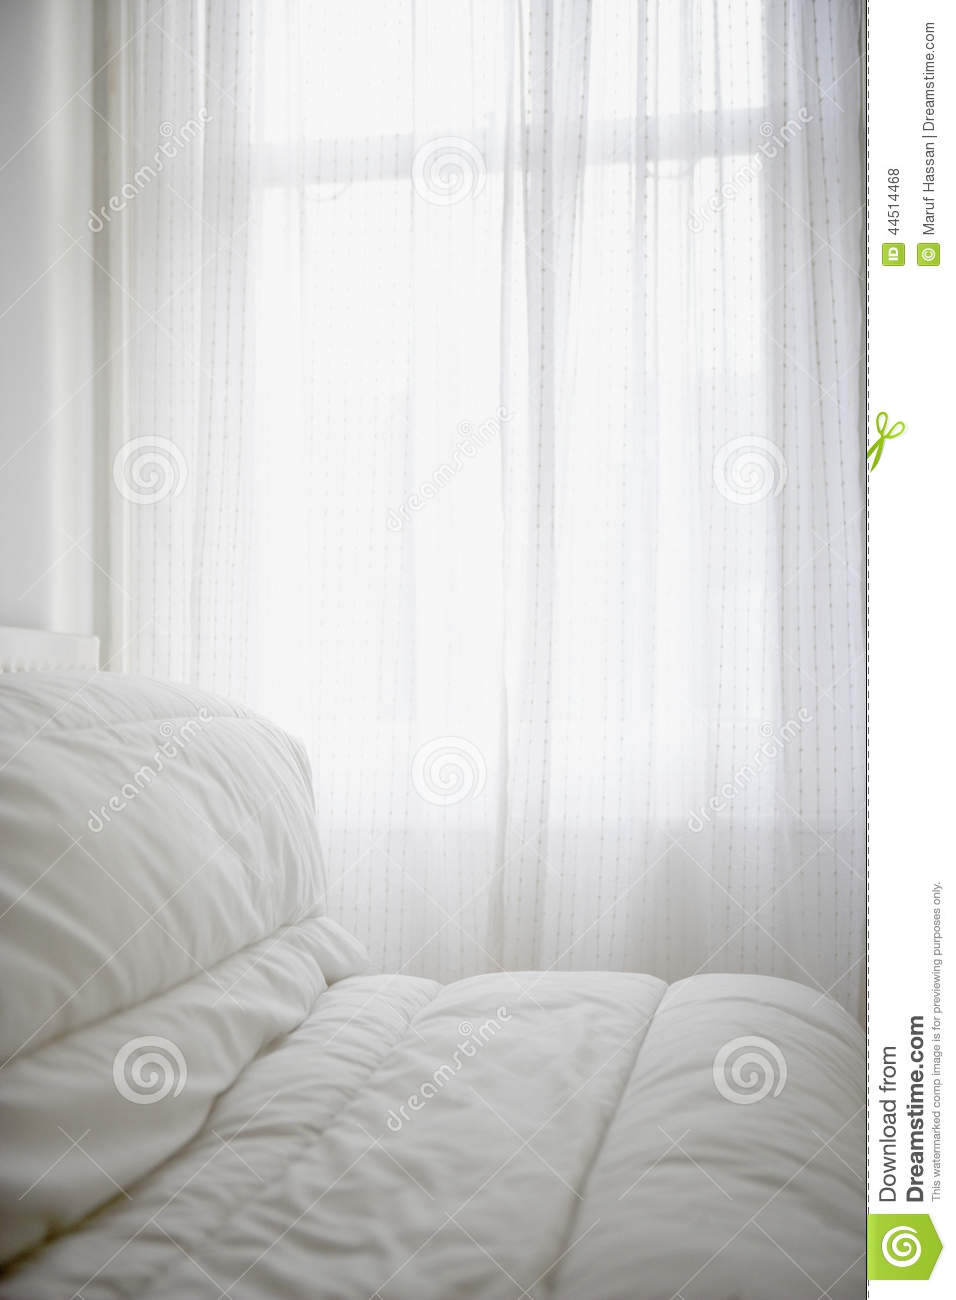 Comfortable Mattress Cover On A Bed Room Stock Photo